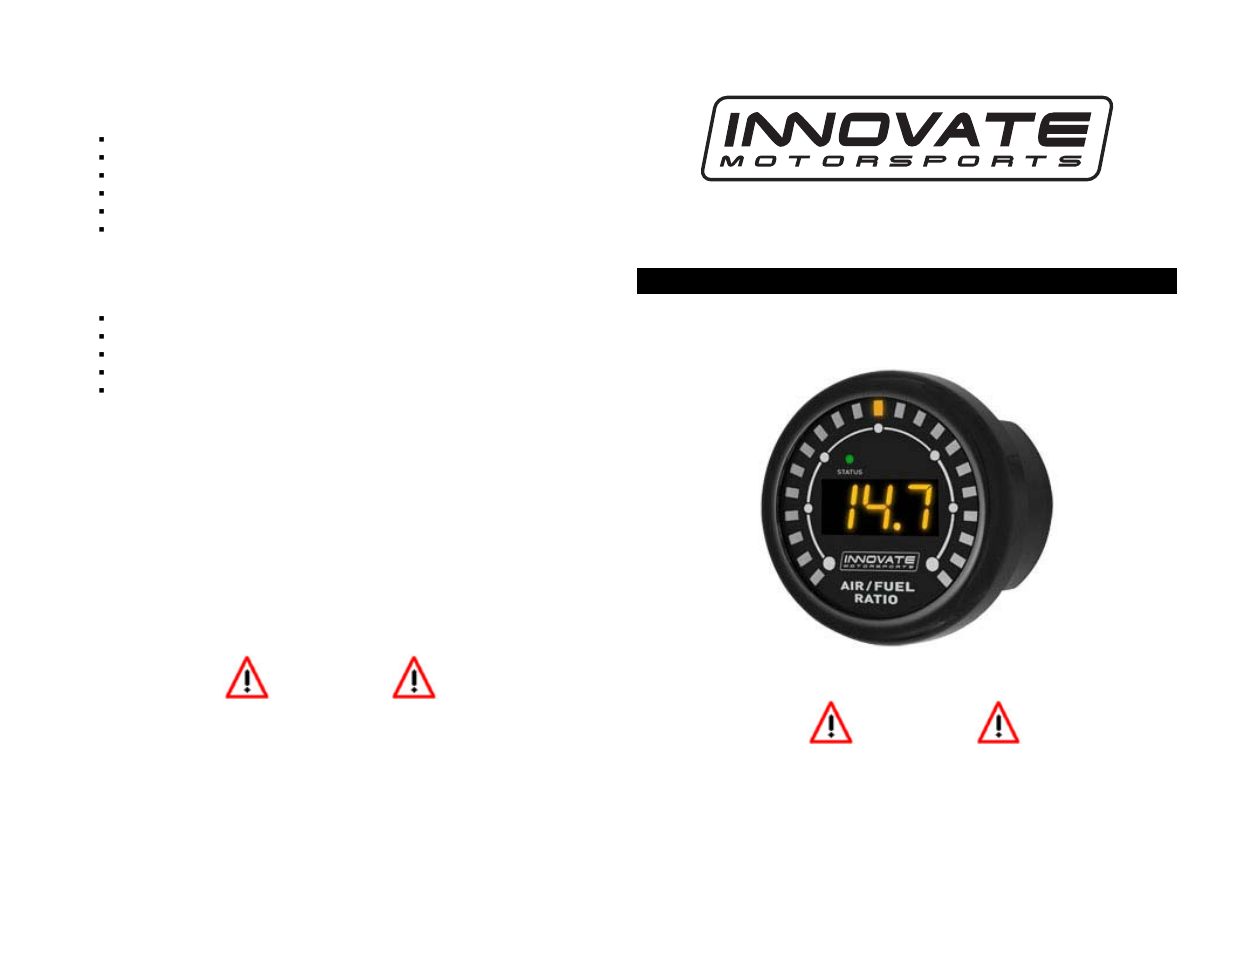 Innovate Motorsports MTX-L Quick Start Guide User Manual   2